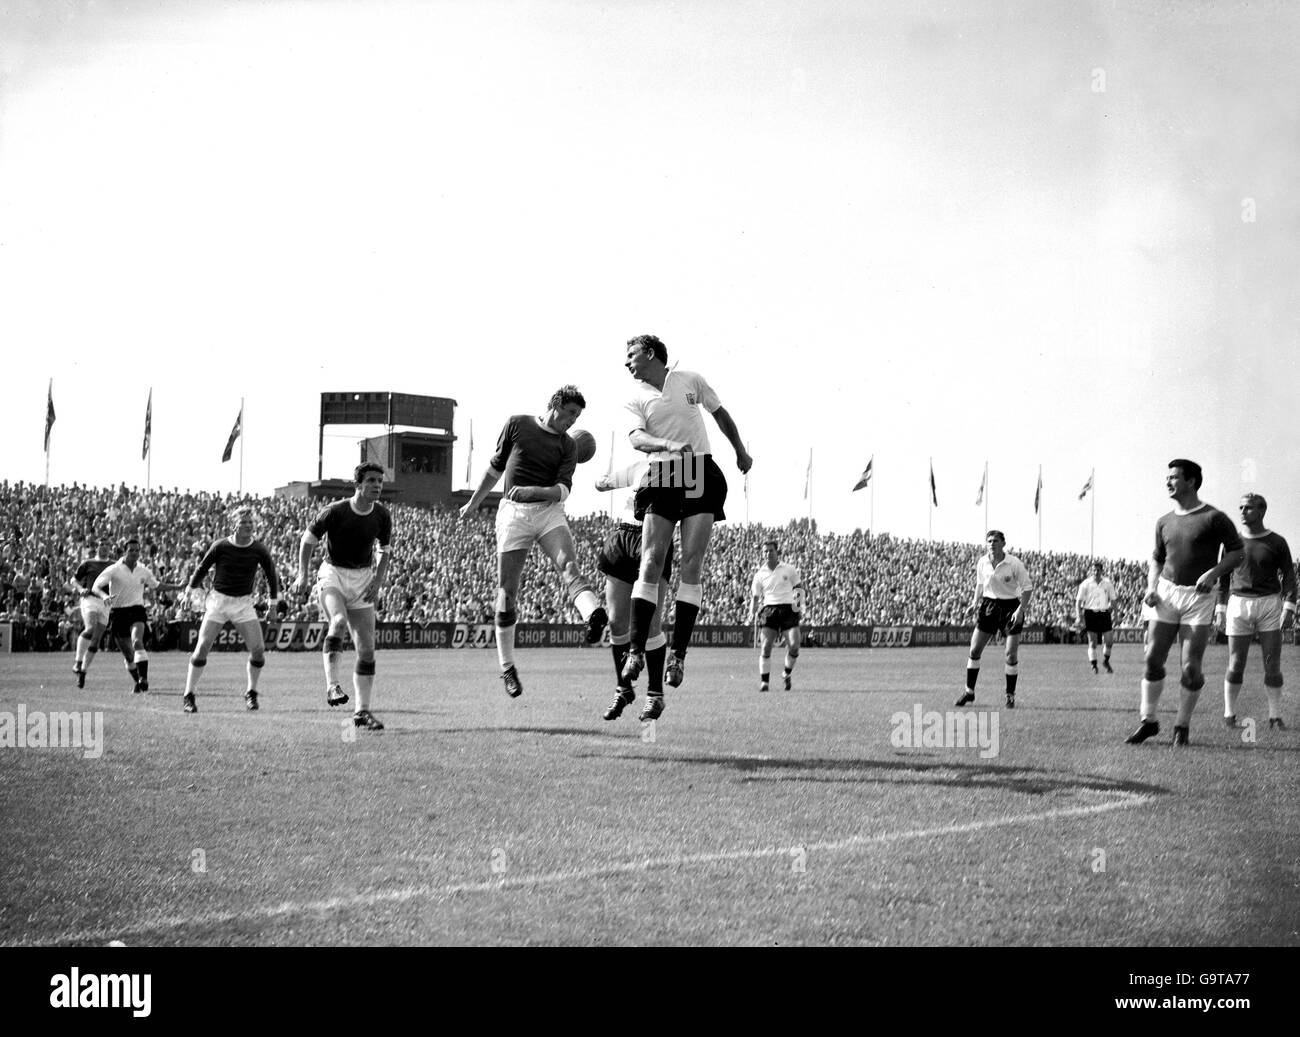 Soccer - Football League Division One - Fulham v Everton - Stock Image